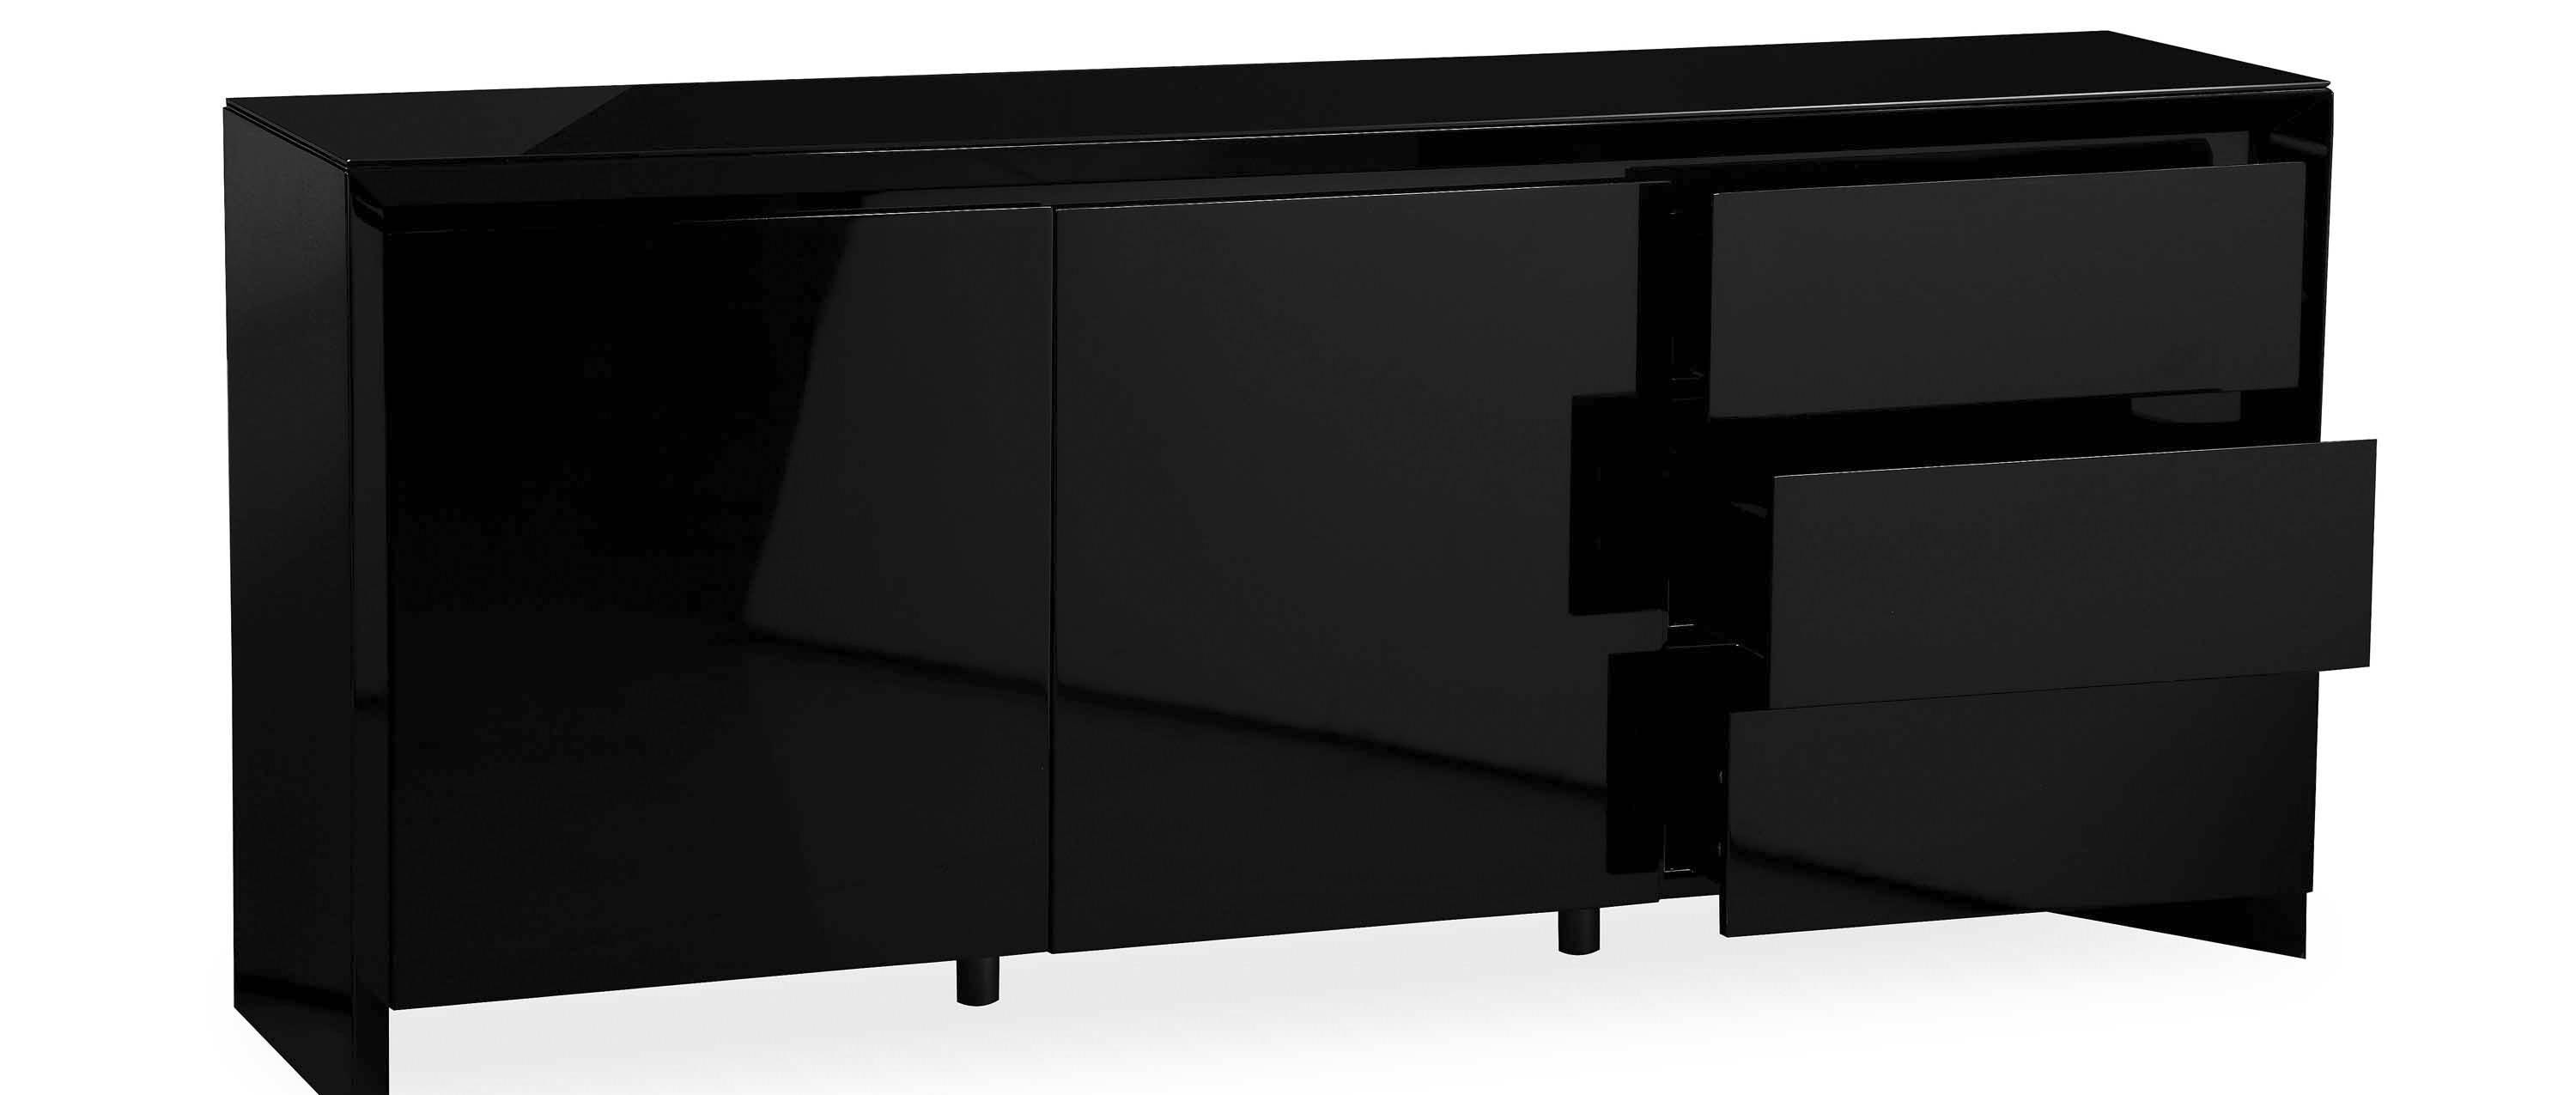 Soho – Extra Large Sideboard – Black High Gloss Pertaining To High Gloss Sideboard (#17 of 20)